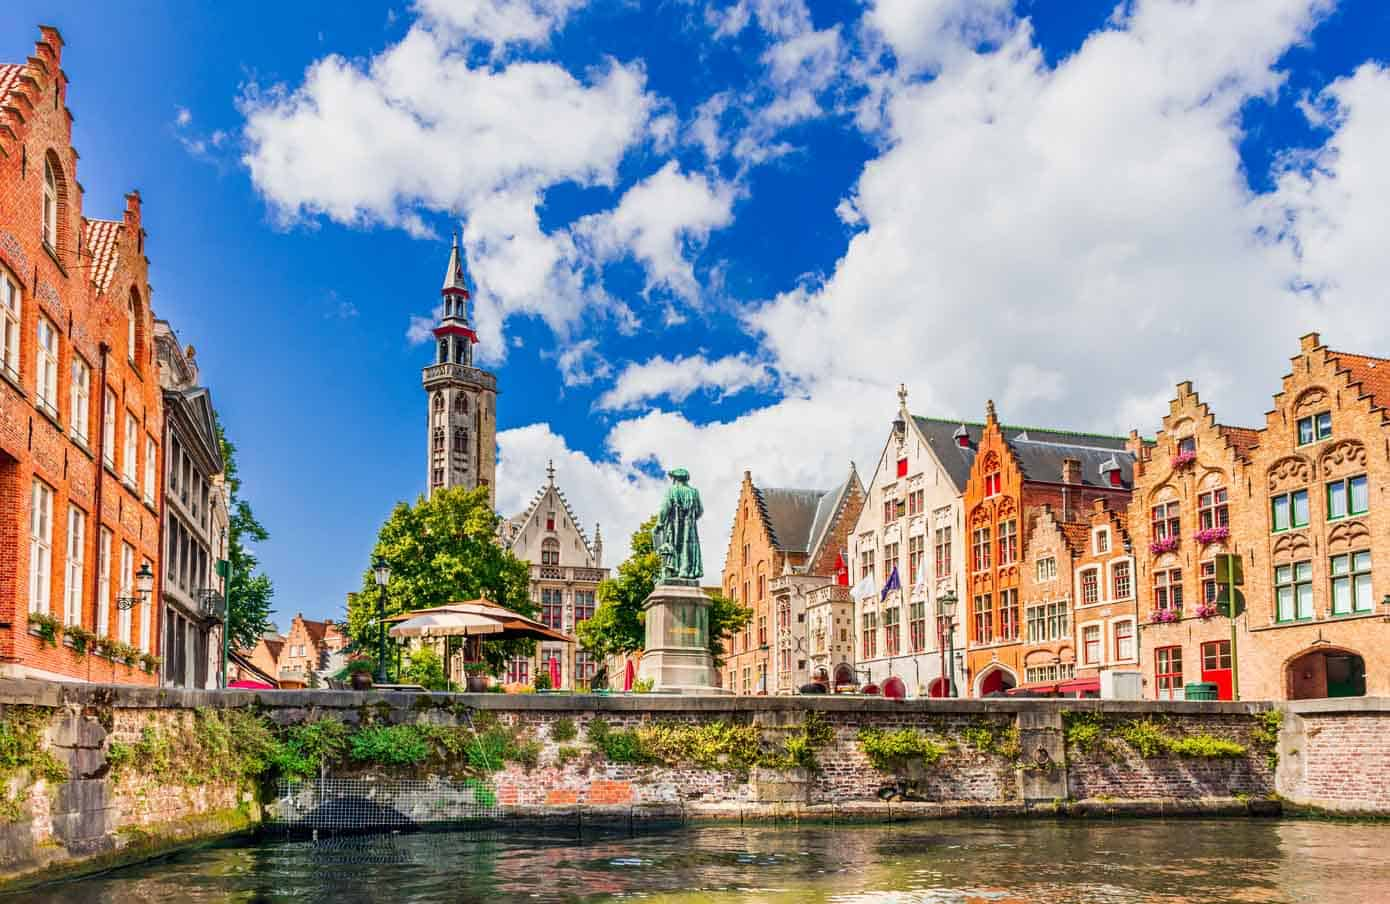 Medieval houses in Belgium on the Bruges canal.